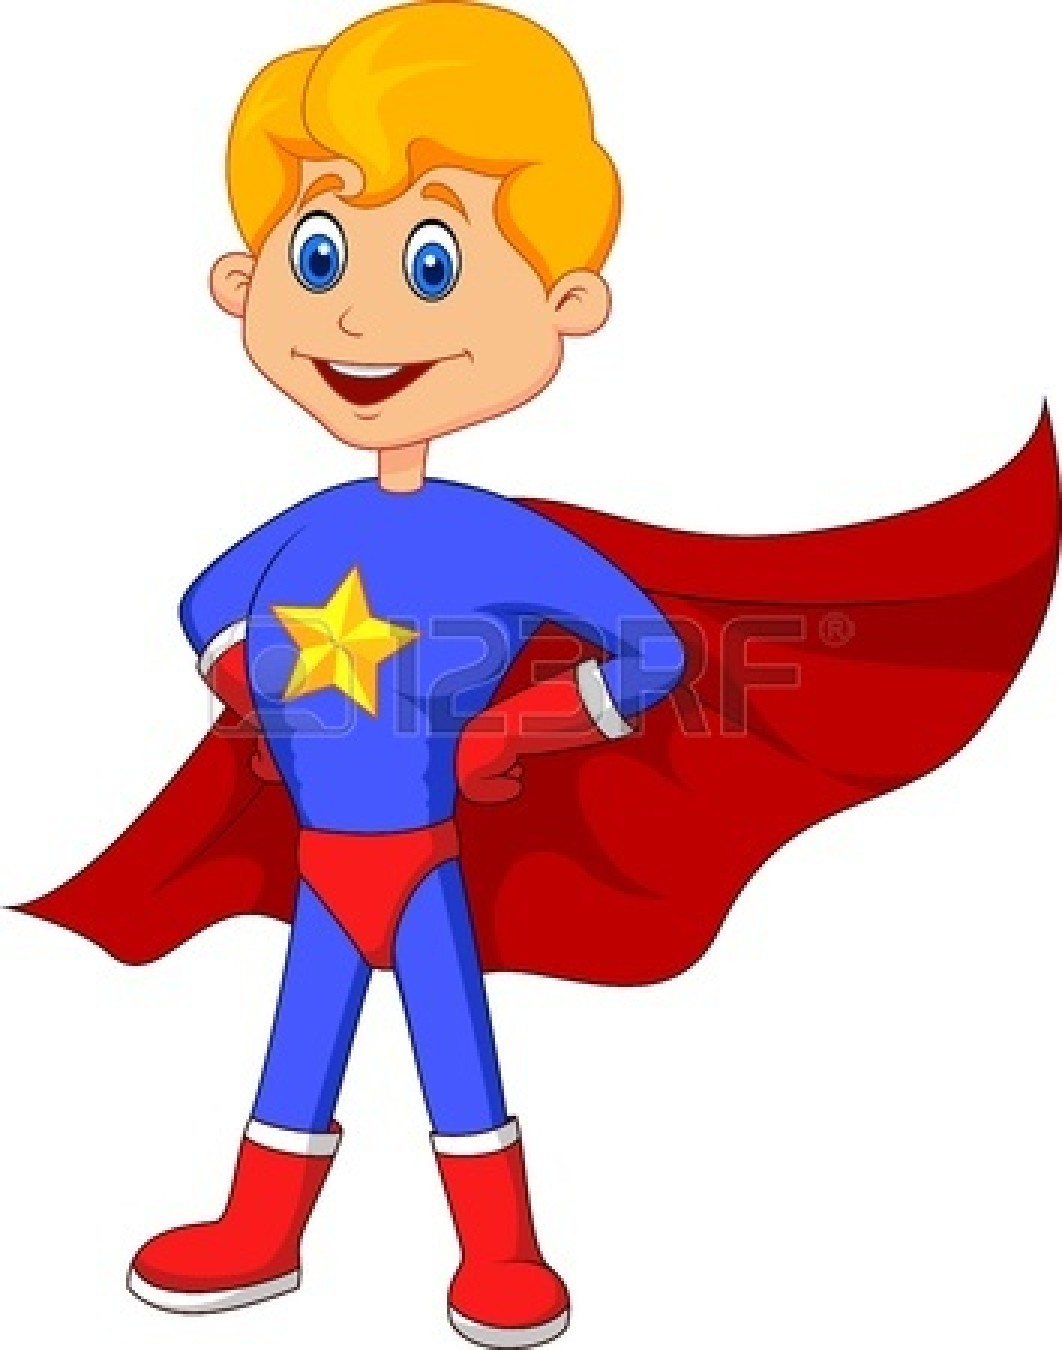 superman%20cape%20clipart